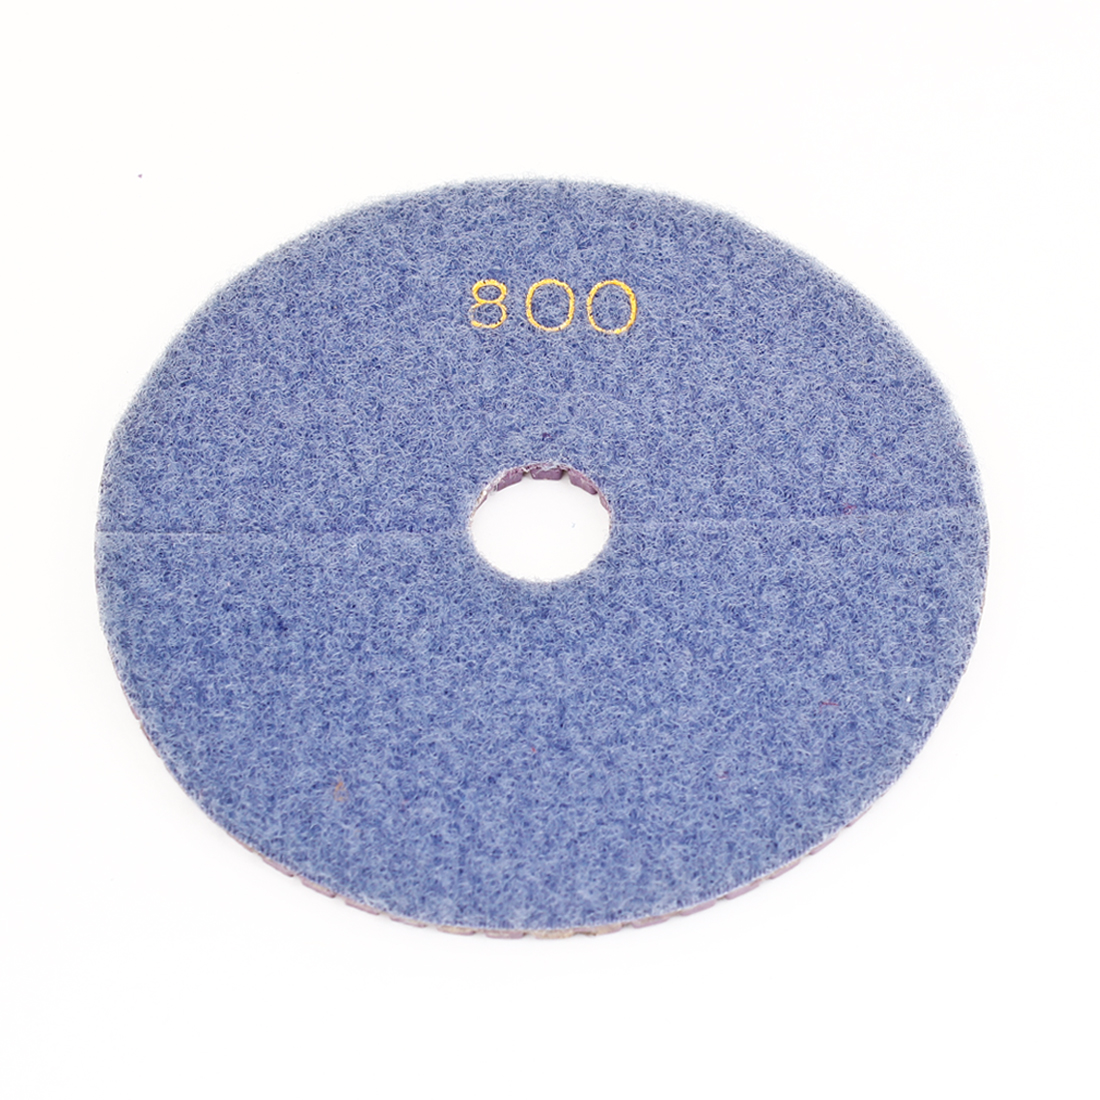 Marble Stone 800 Grit Wet Dry Diamond Buffer Polishing Pad Disc Purple